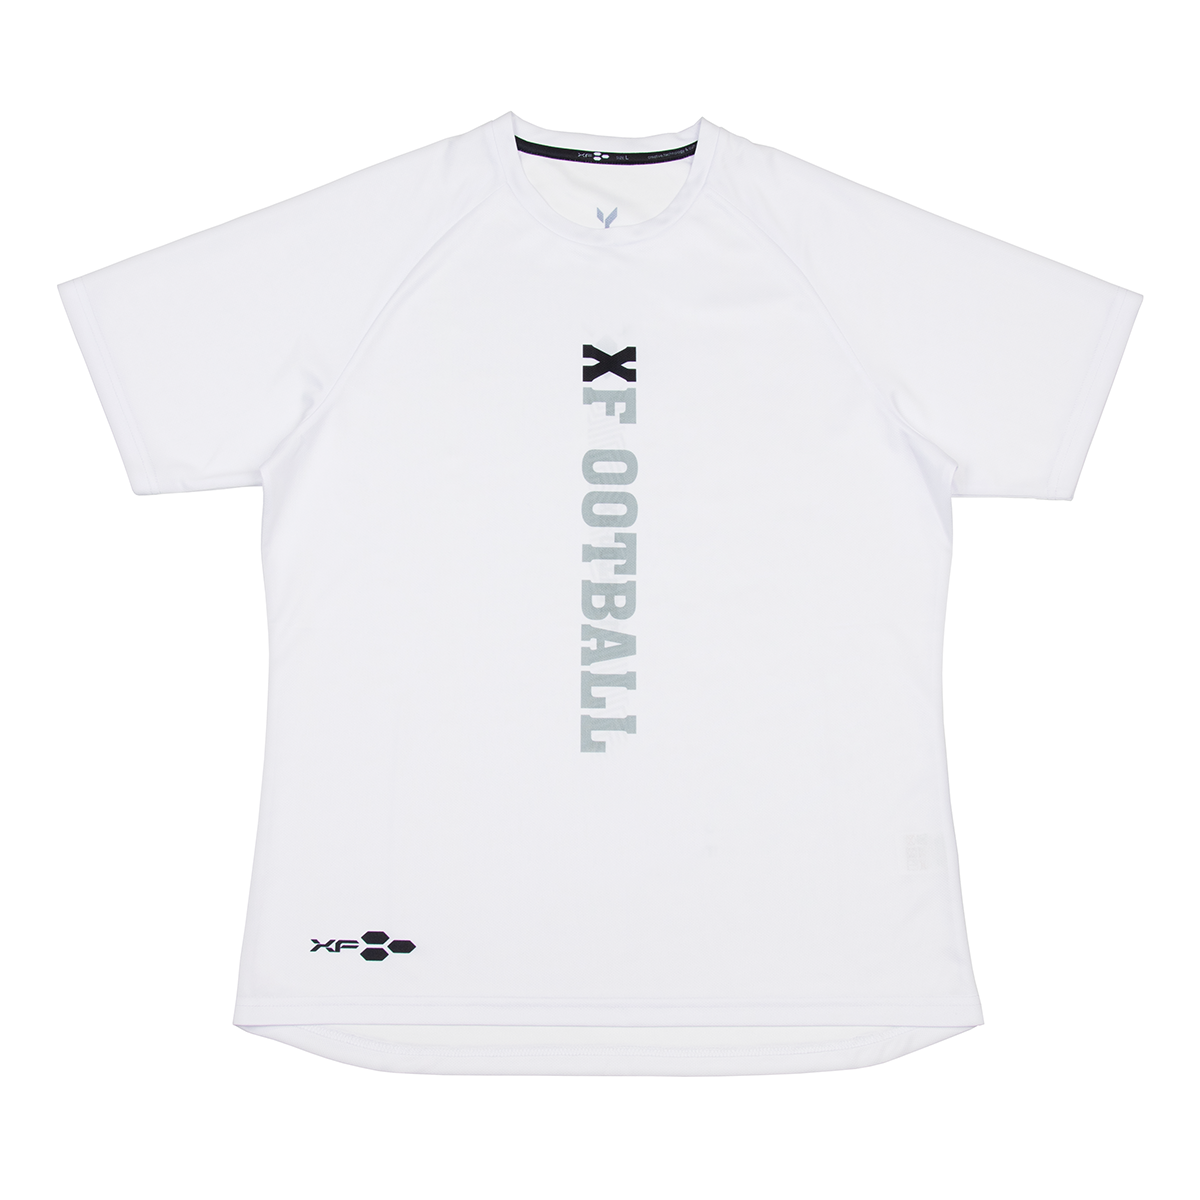 <img class='new_mark_img1' src='https://img.shop-pro.jp/img/new/icons8.gif' style='border:none;display:inline;margin:0px;padding:0px;width:auto;' />Tシャツ Design05 ホワイト